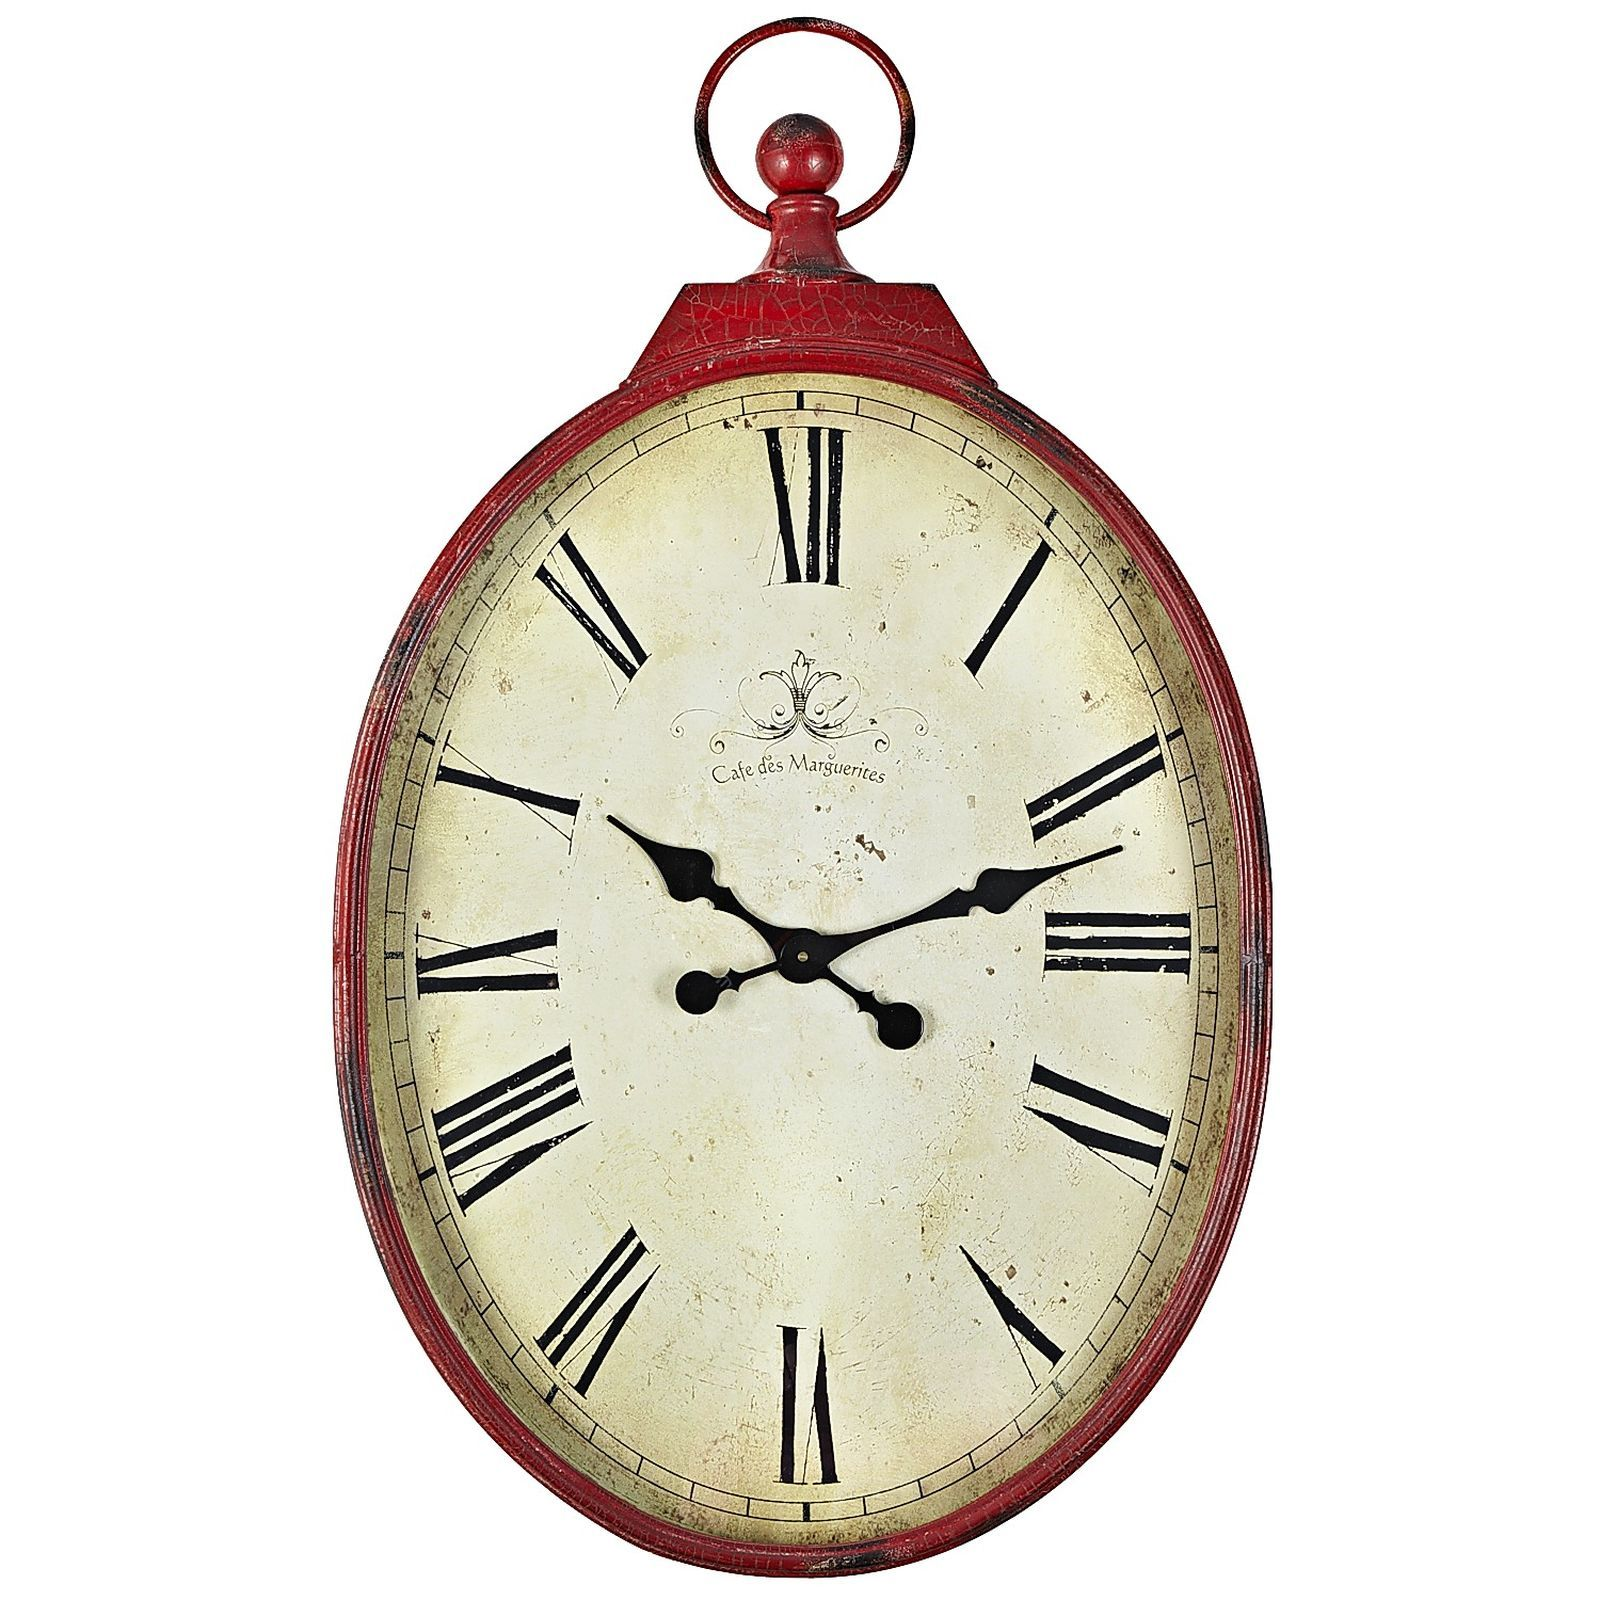 Antiqued Wall Clock Red Red Wall Clock Wall Clock Red Walls